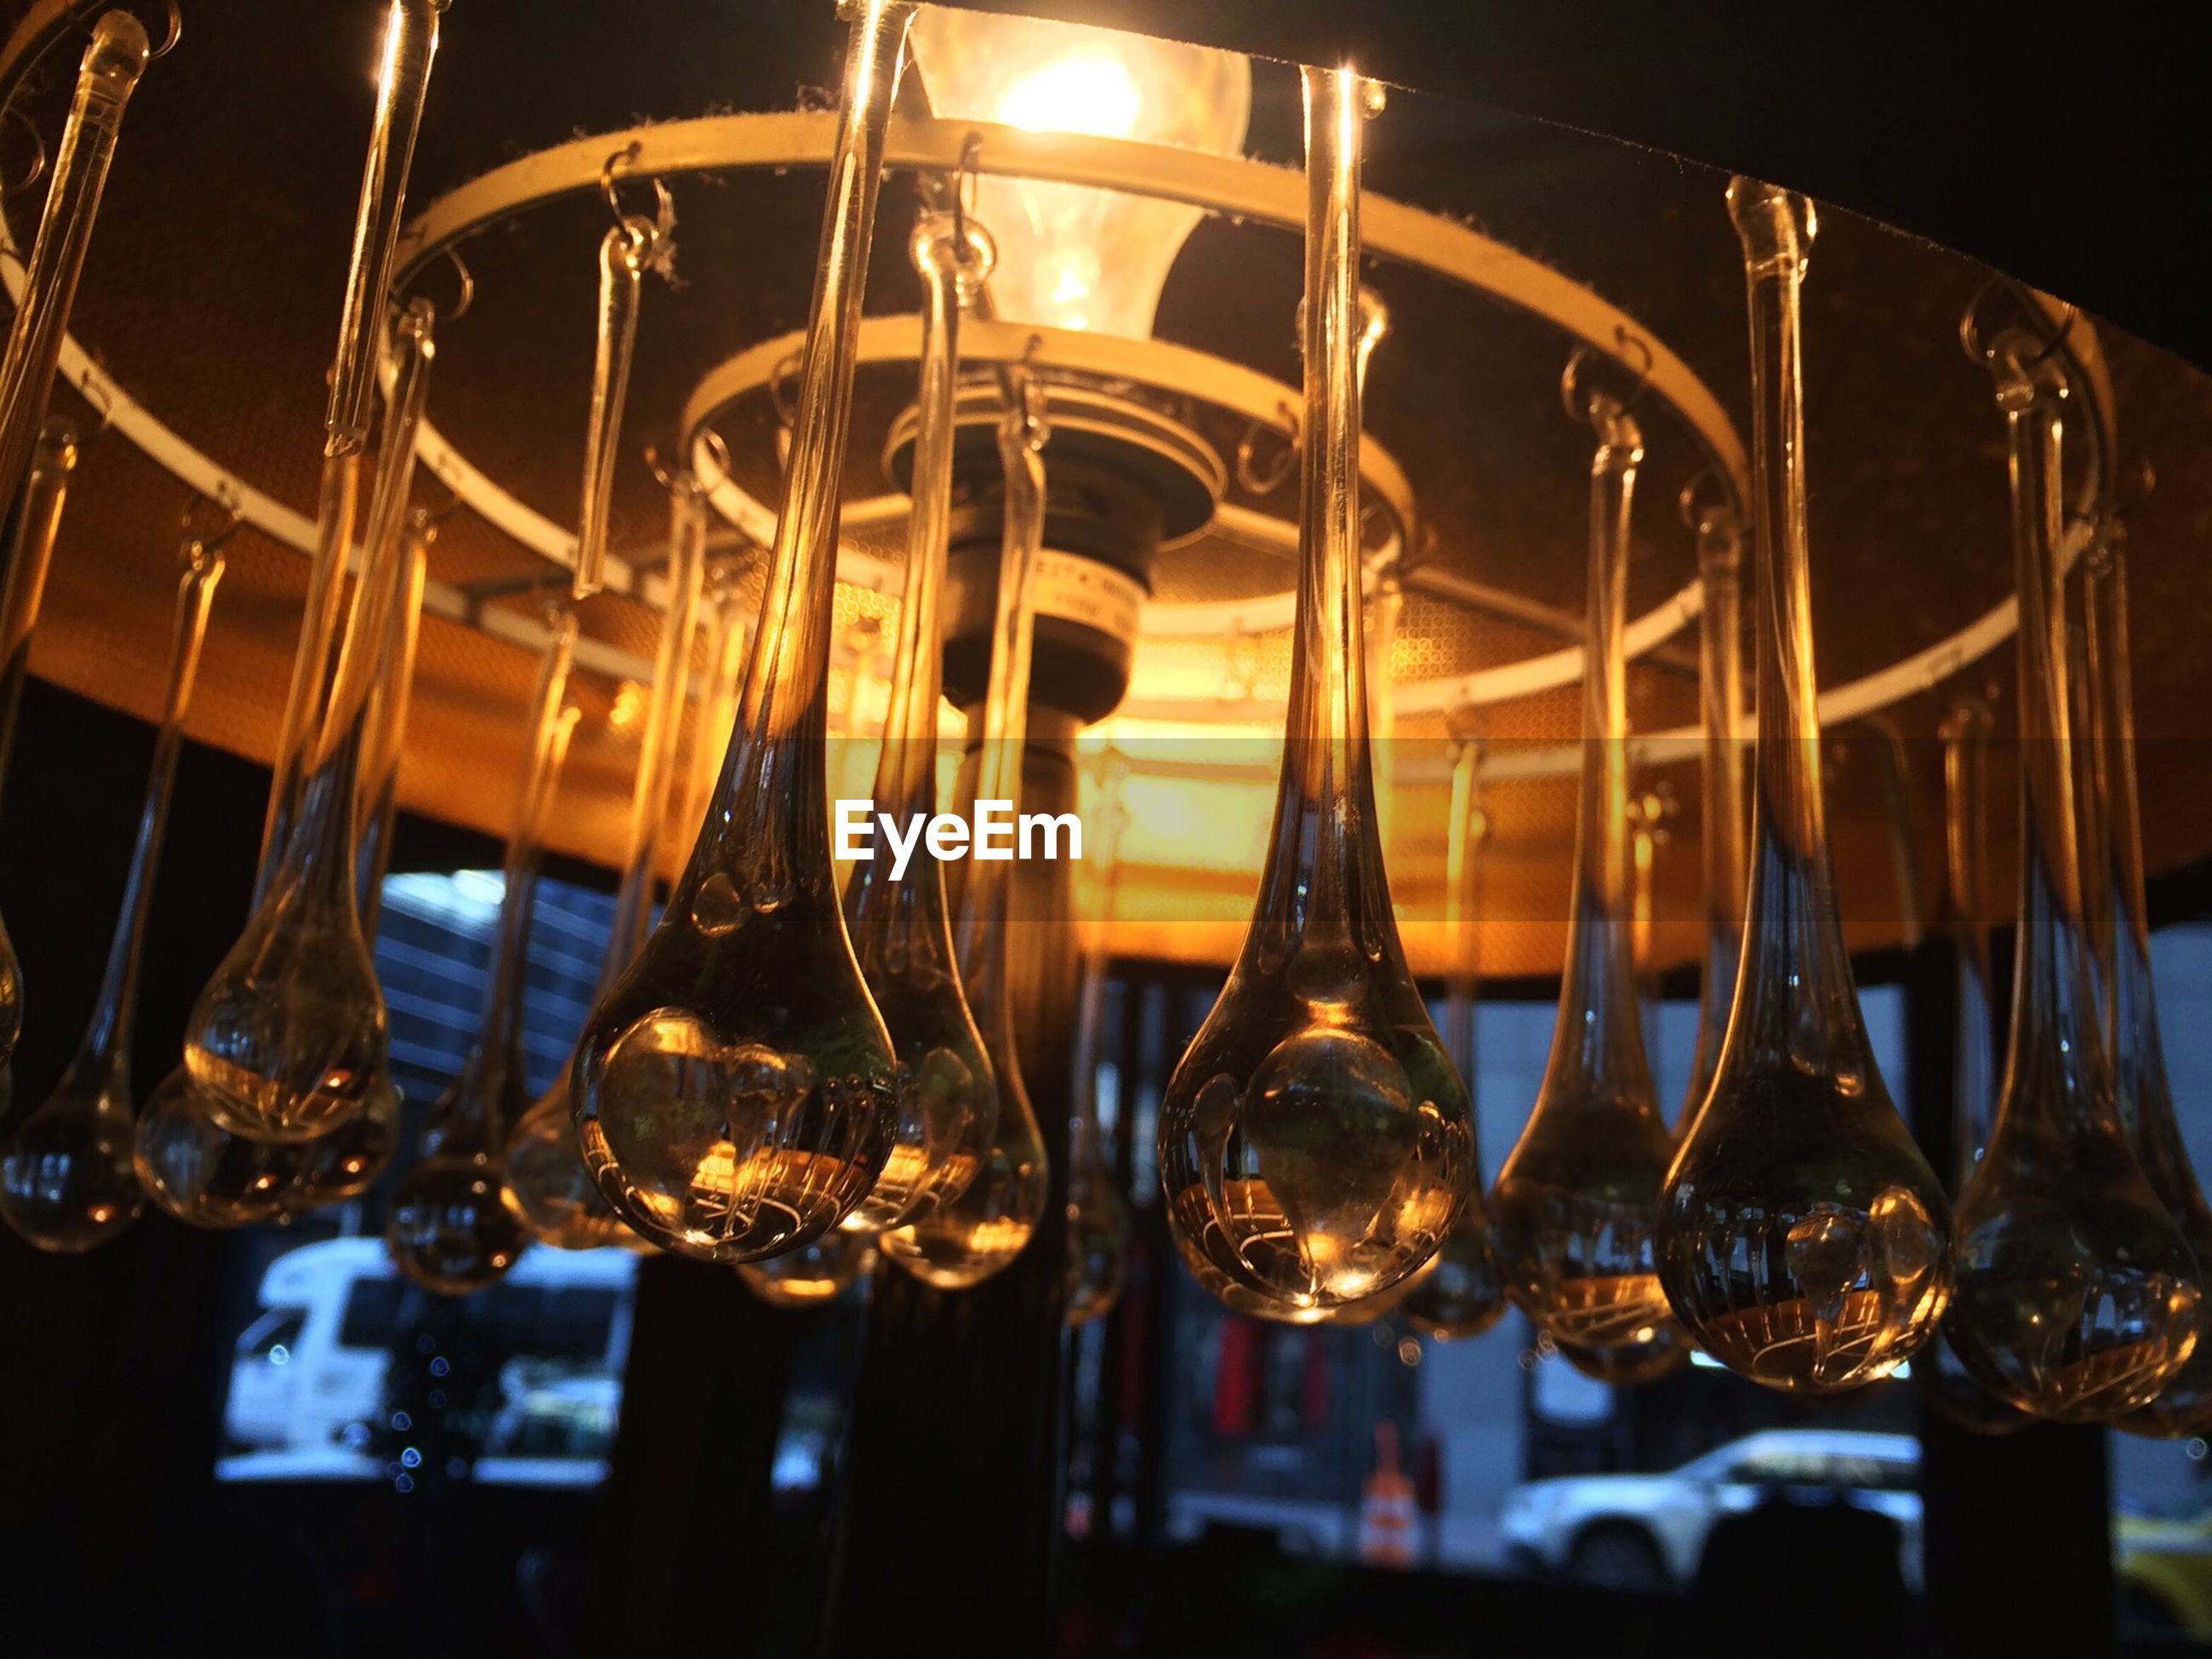 Low angle view of illuminated light bulb amidst glass decorations at cafe